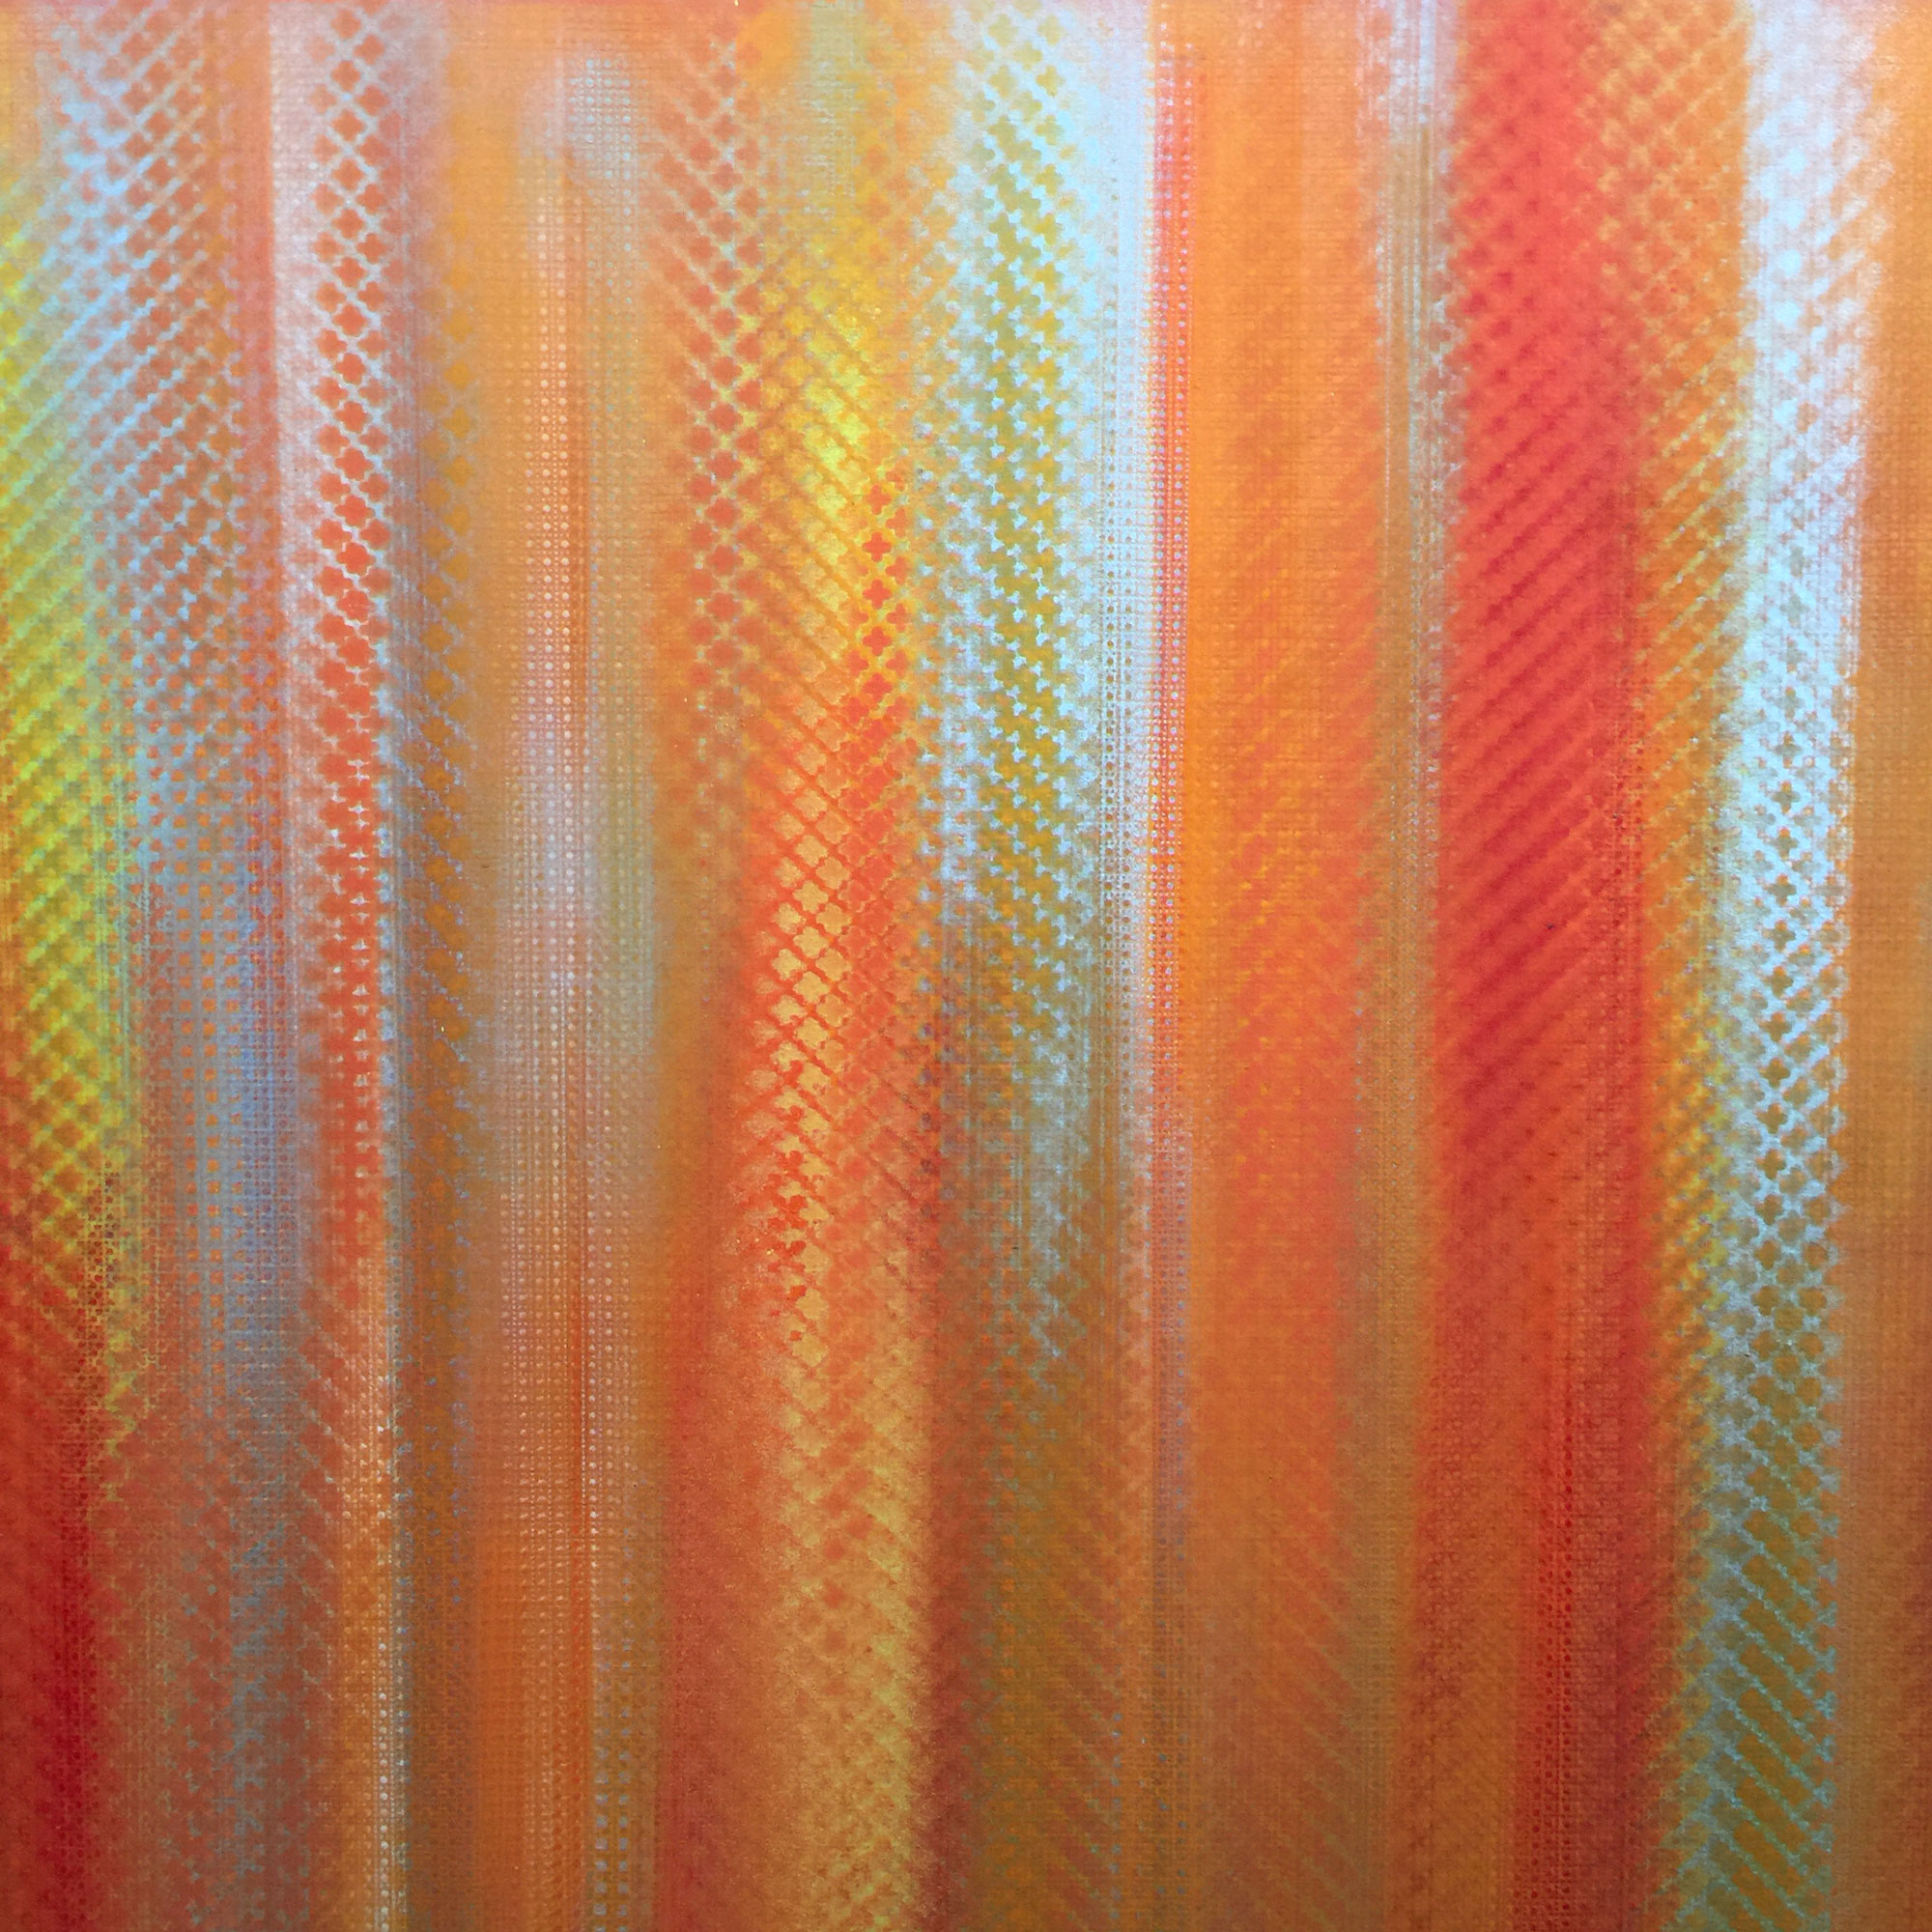 Orange Sunshine - 2016 ACRYLIC & HAND POURED CLEAR RESIN